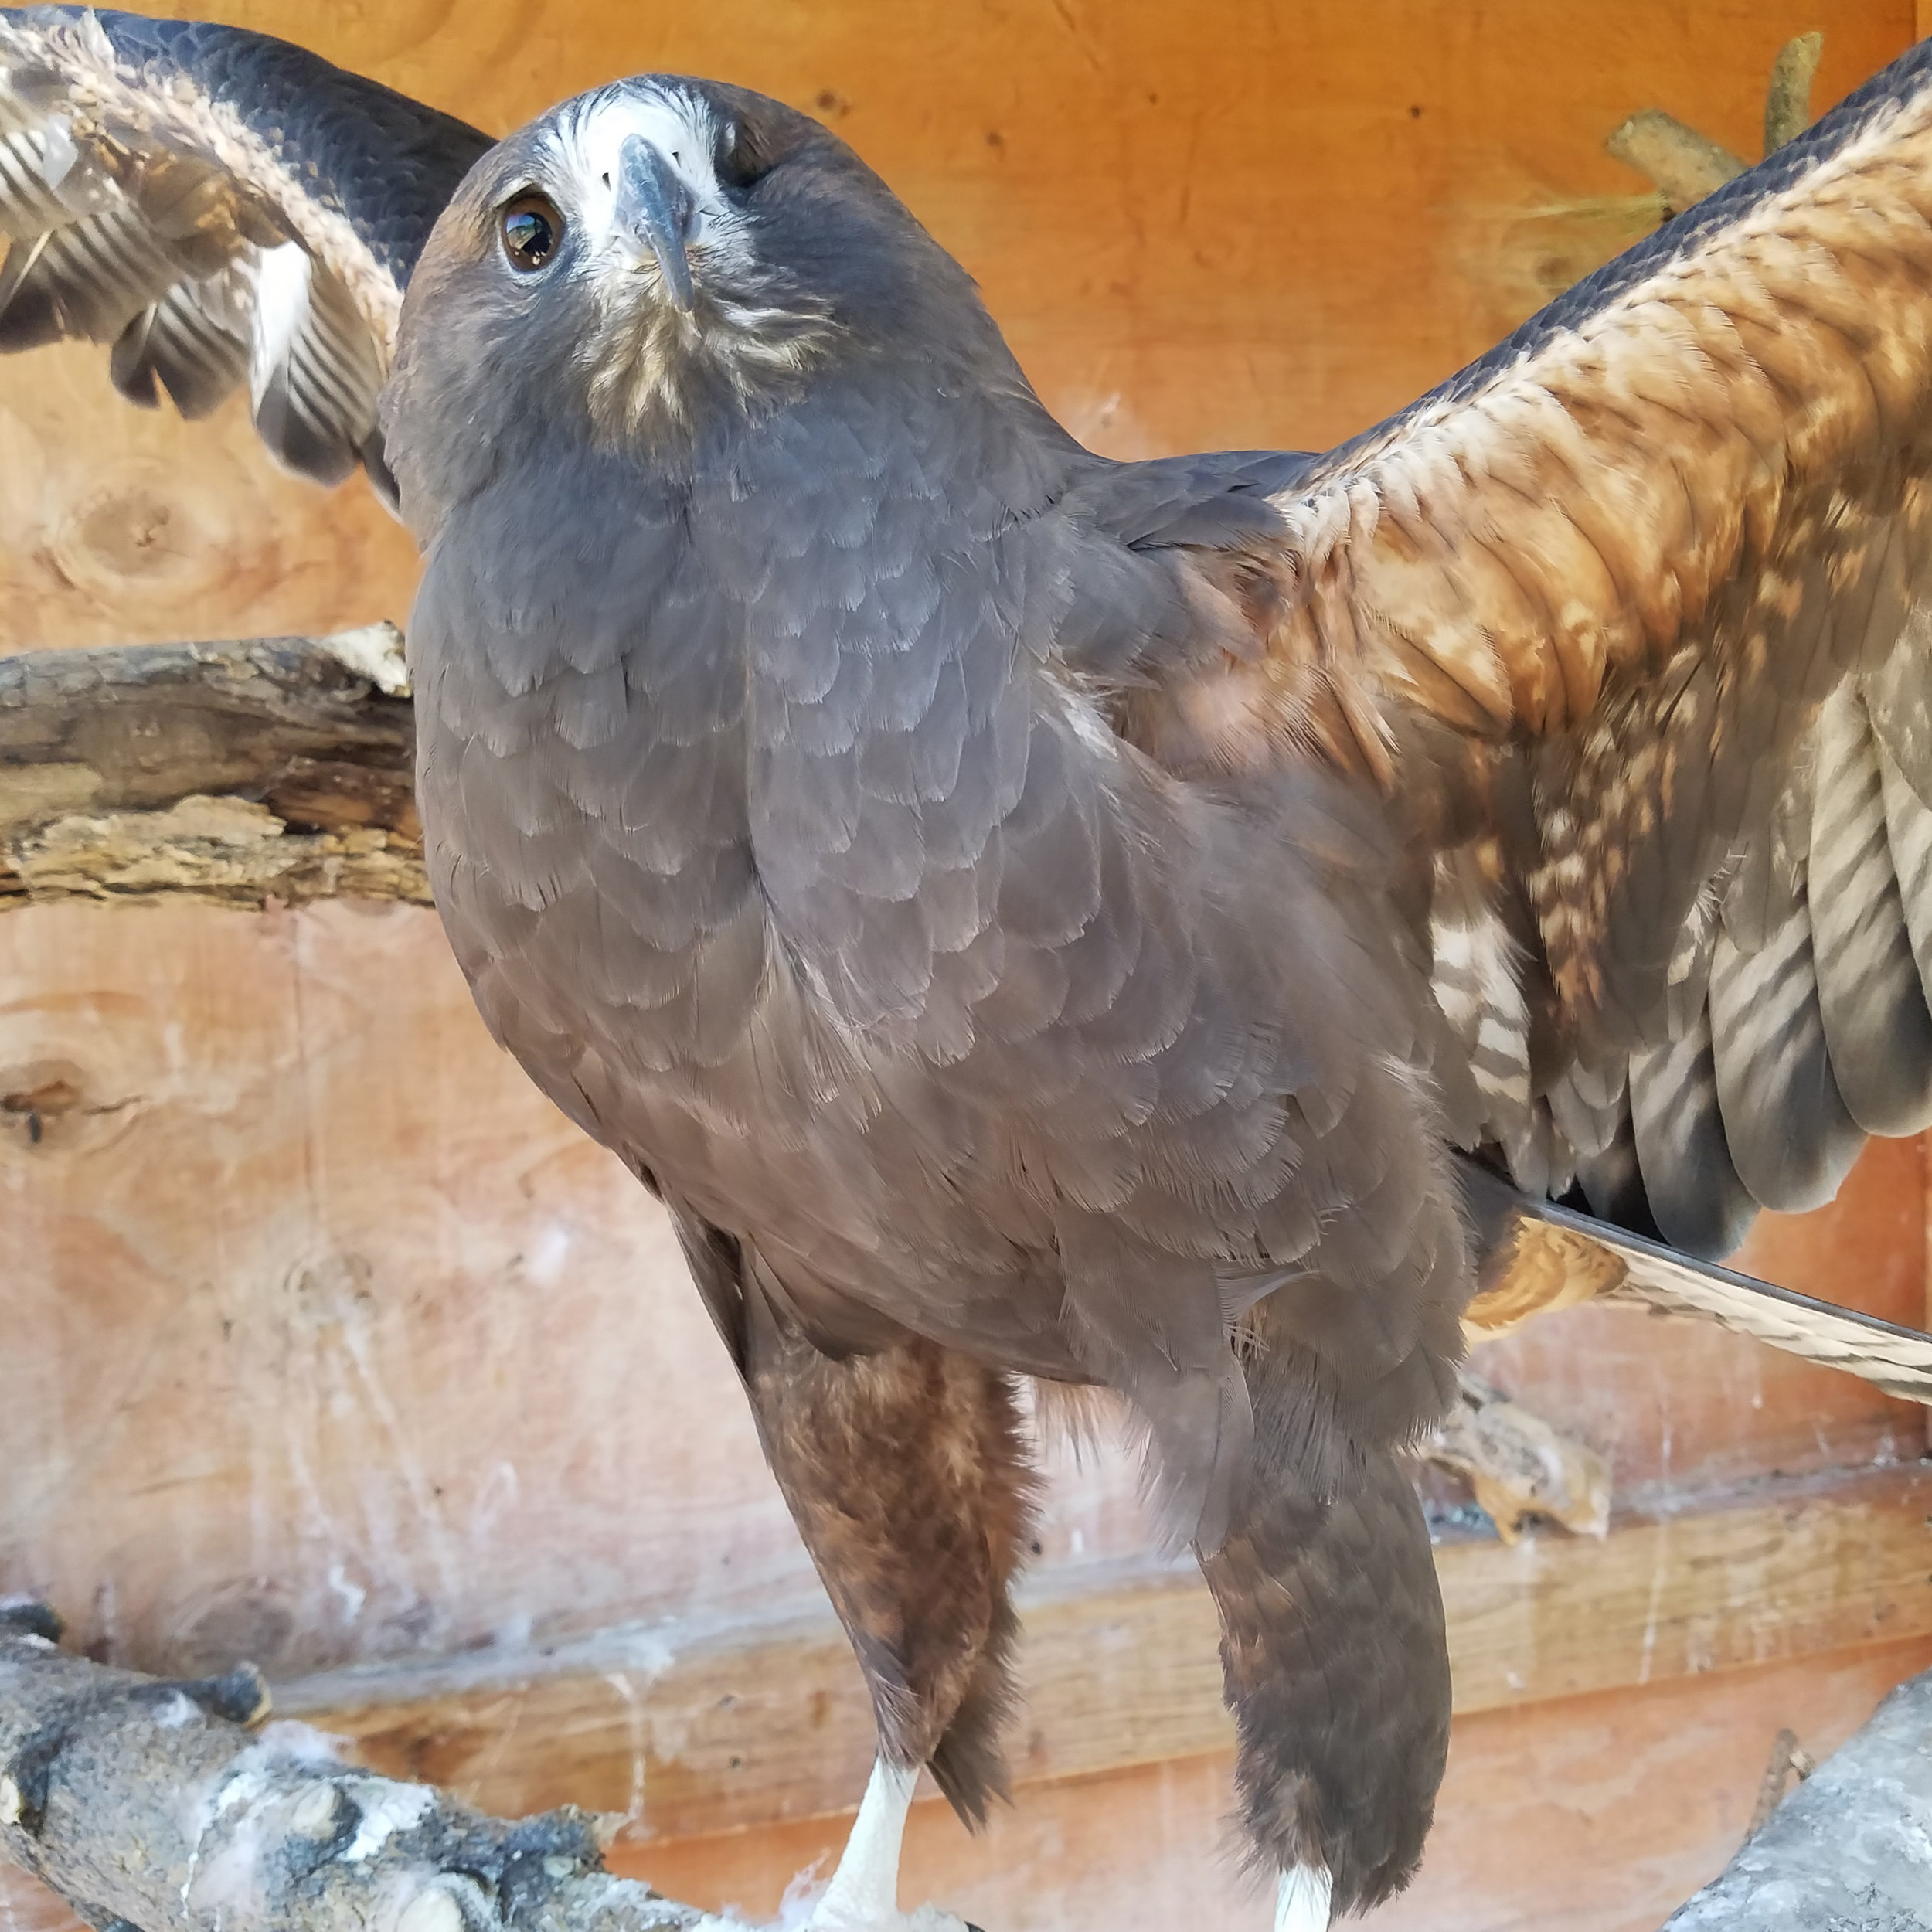 HAWKEYE  came to the Sanctuary in 2005. She was injured as a fledgling and cannot be released into the wild because she is missing her left eye. We believe she was born in August of 2003.